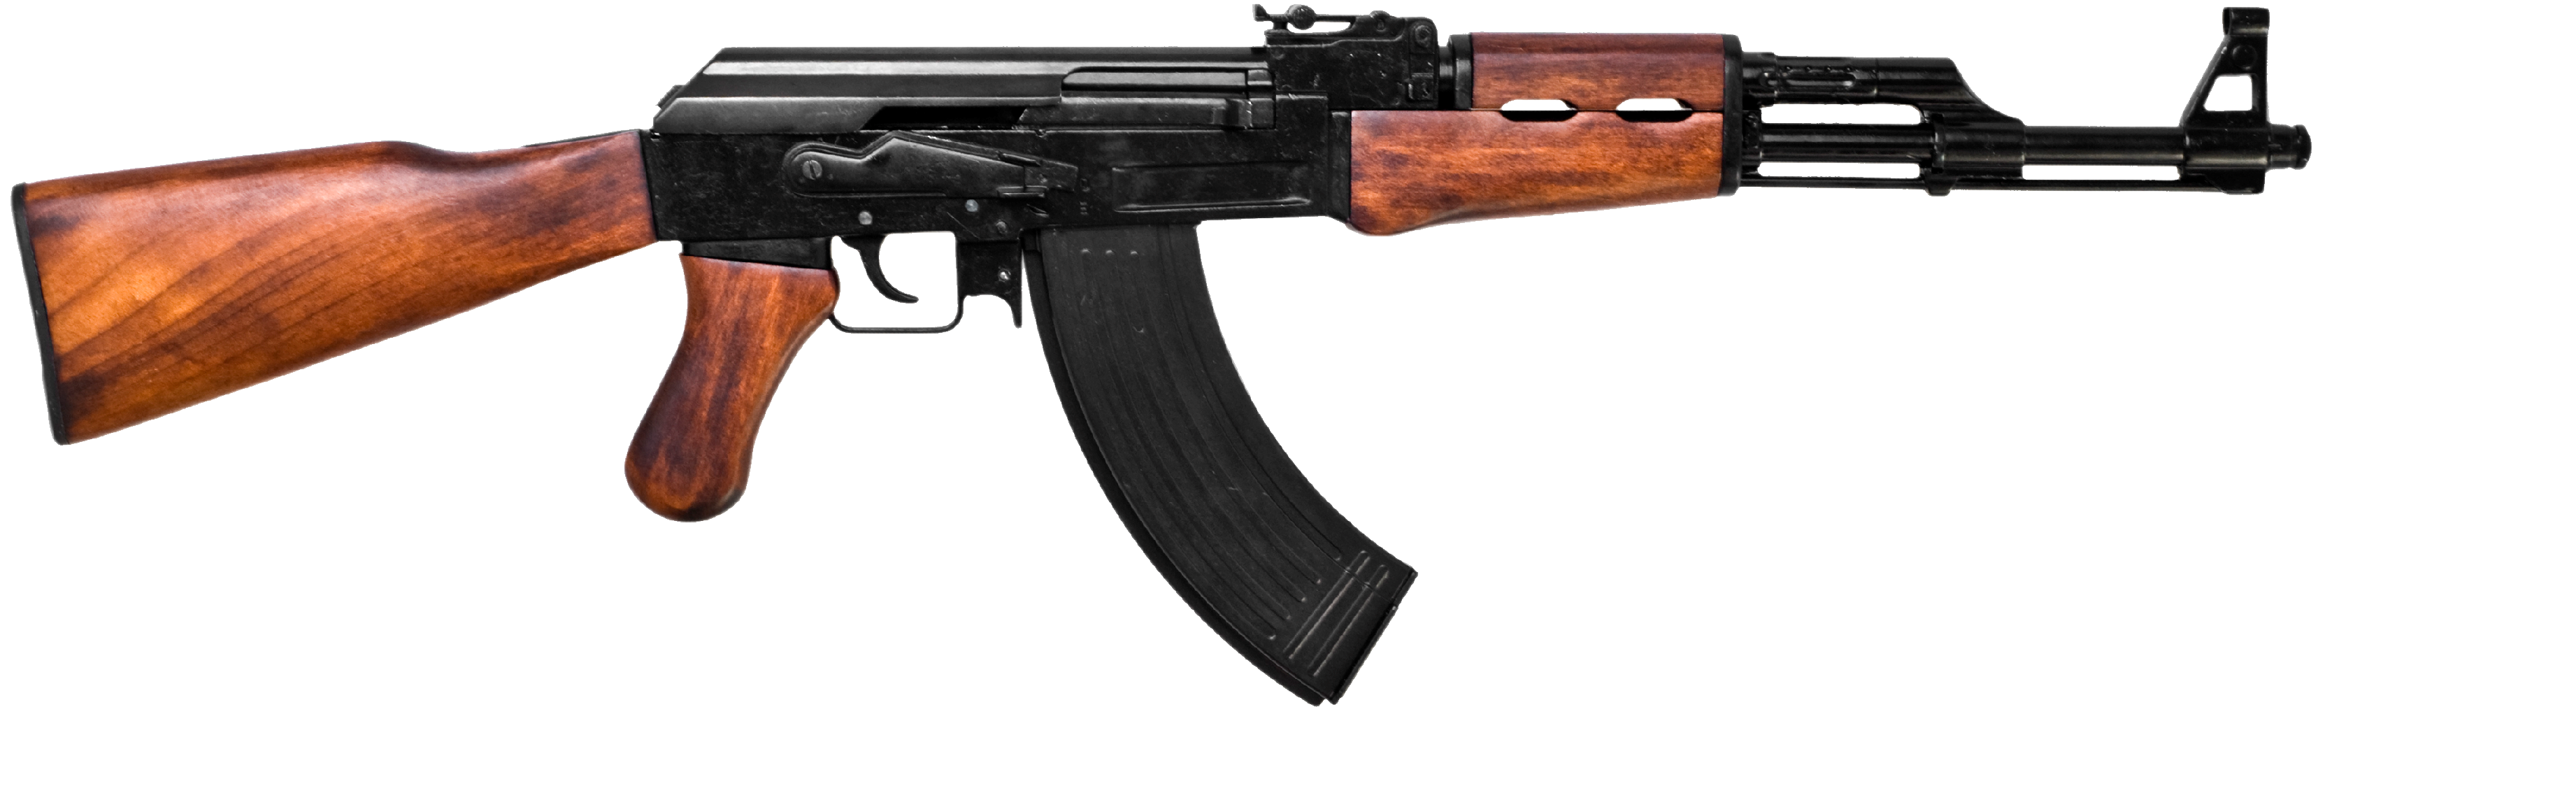 Csgo ak png. Assault rifle clipart